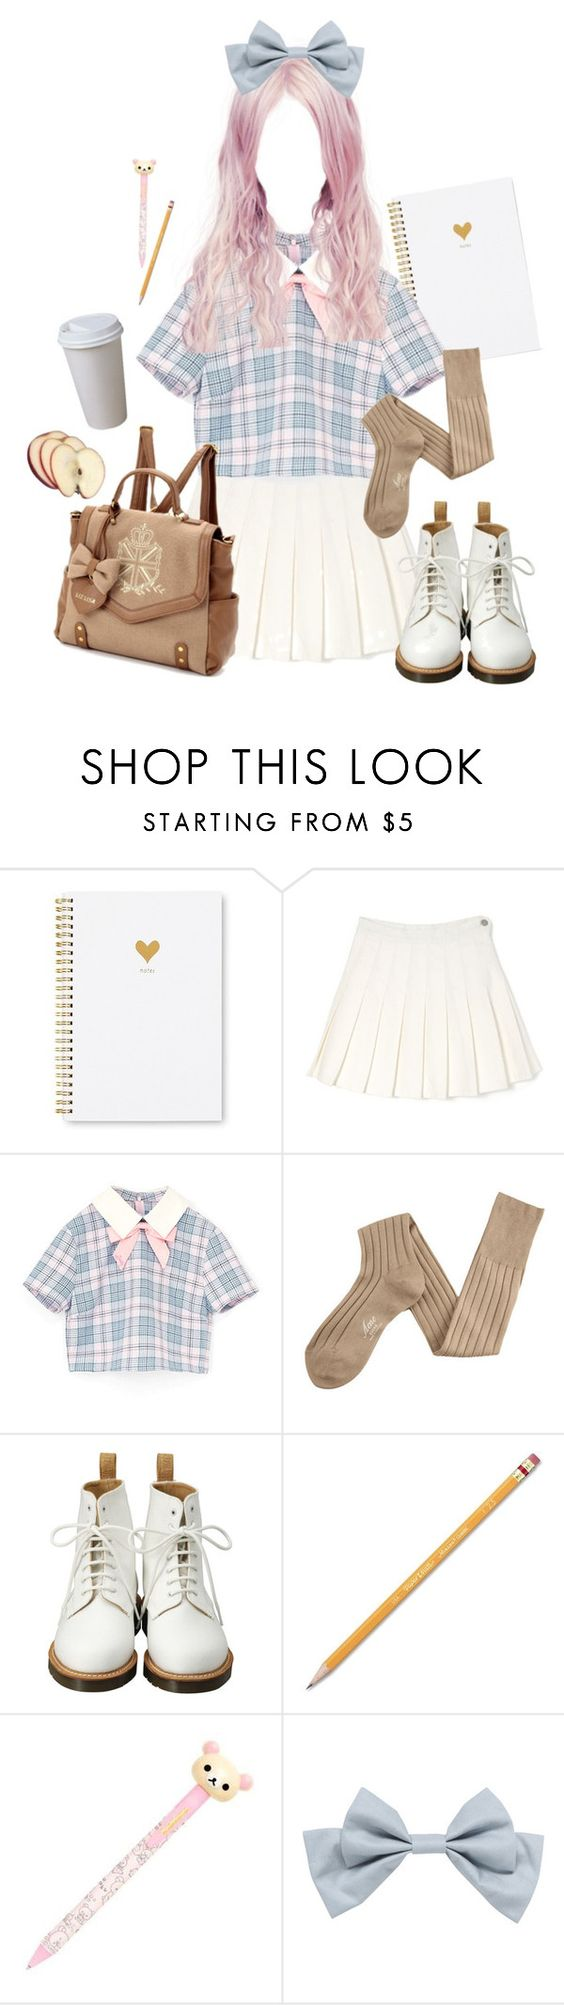 """""""School Day"""" by kittykitty83 ❤ liked on Polyvore featuring Sugar Paper, Acne Studios, Dr. Martens and Paper Mate"""